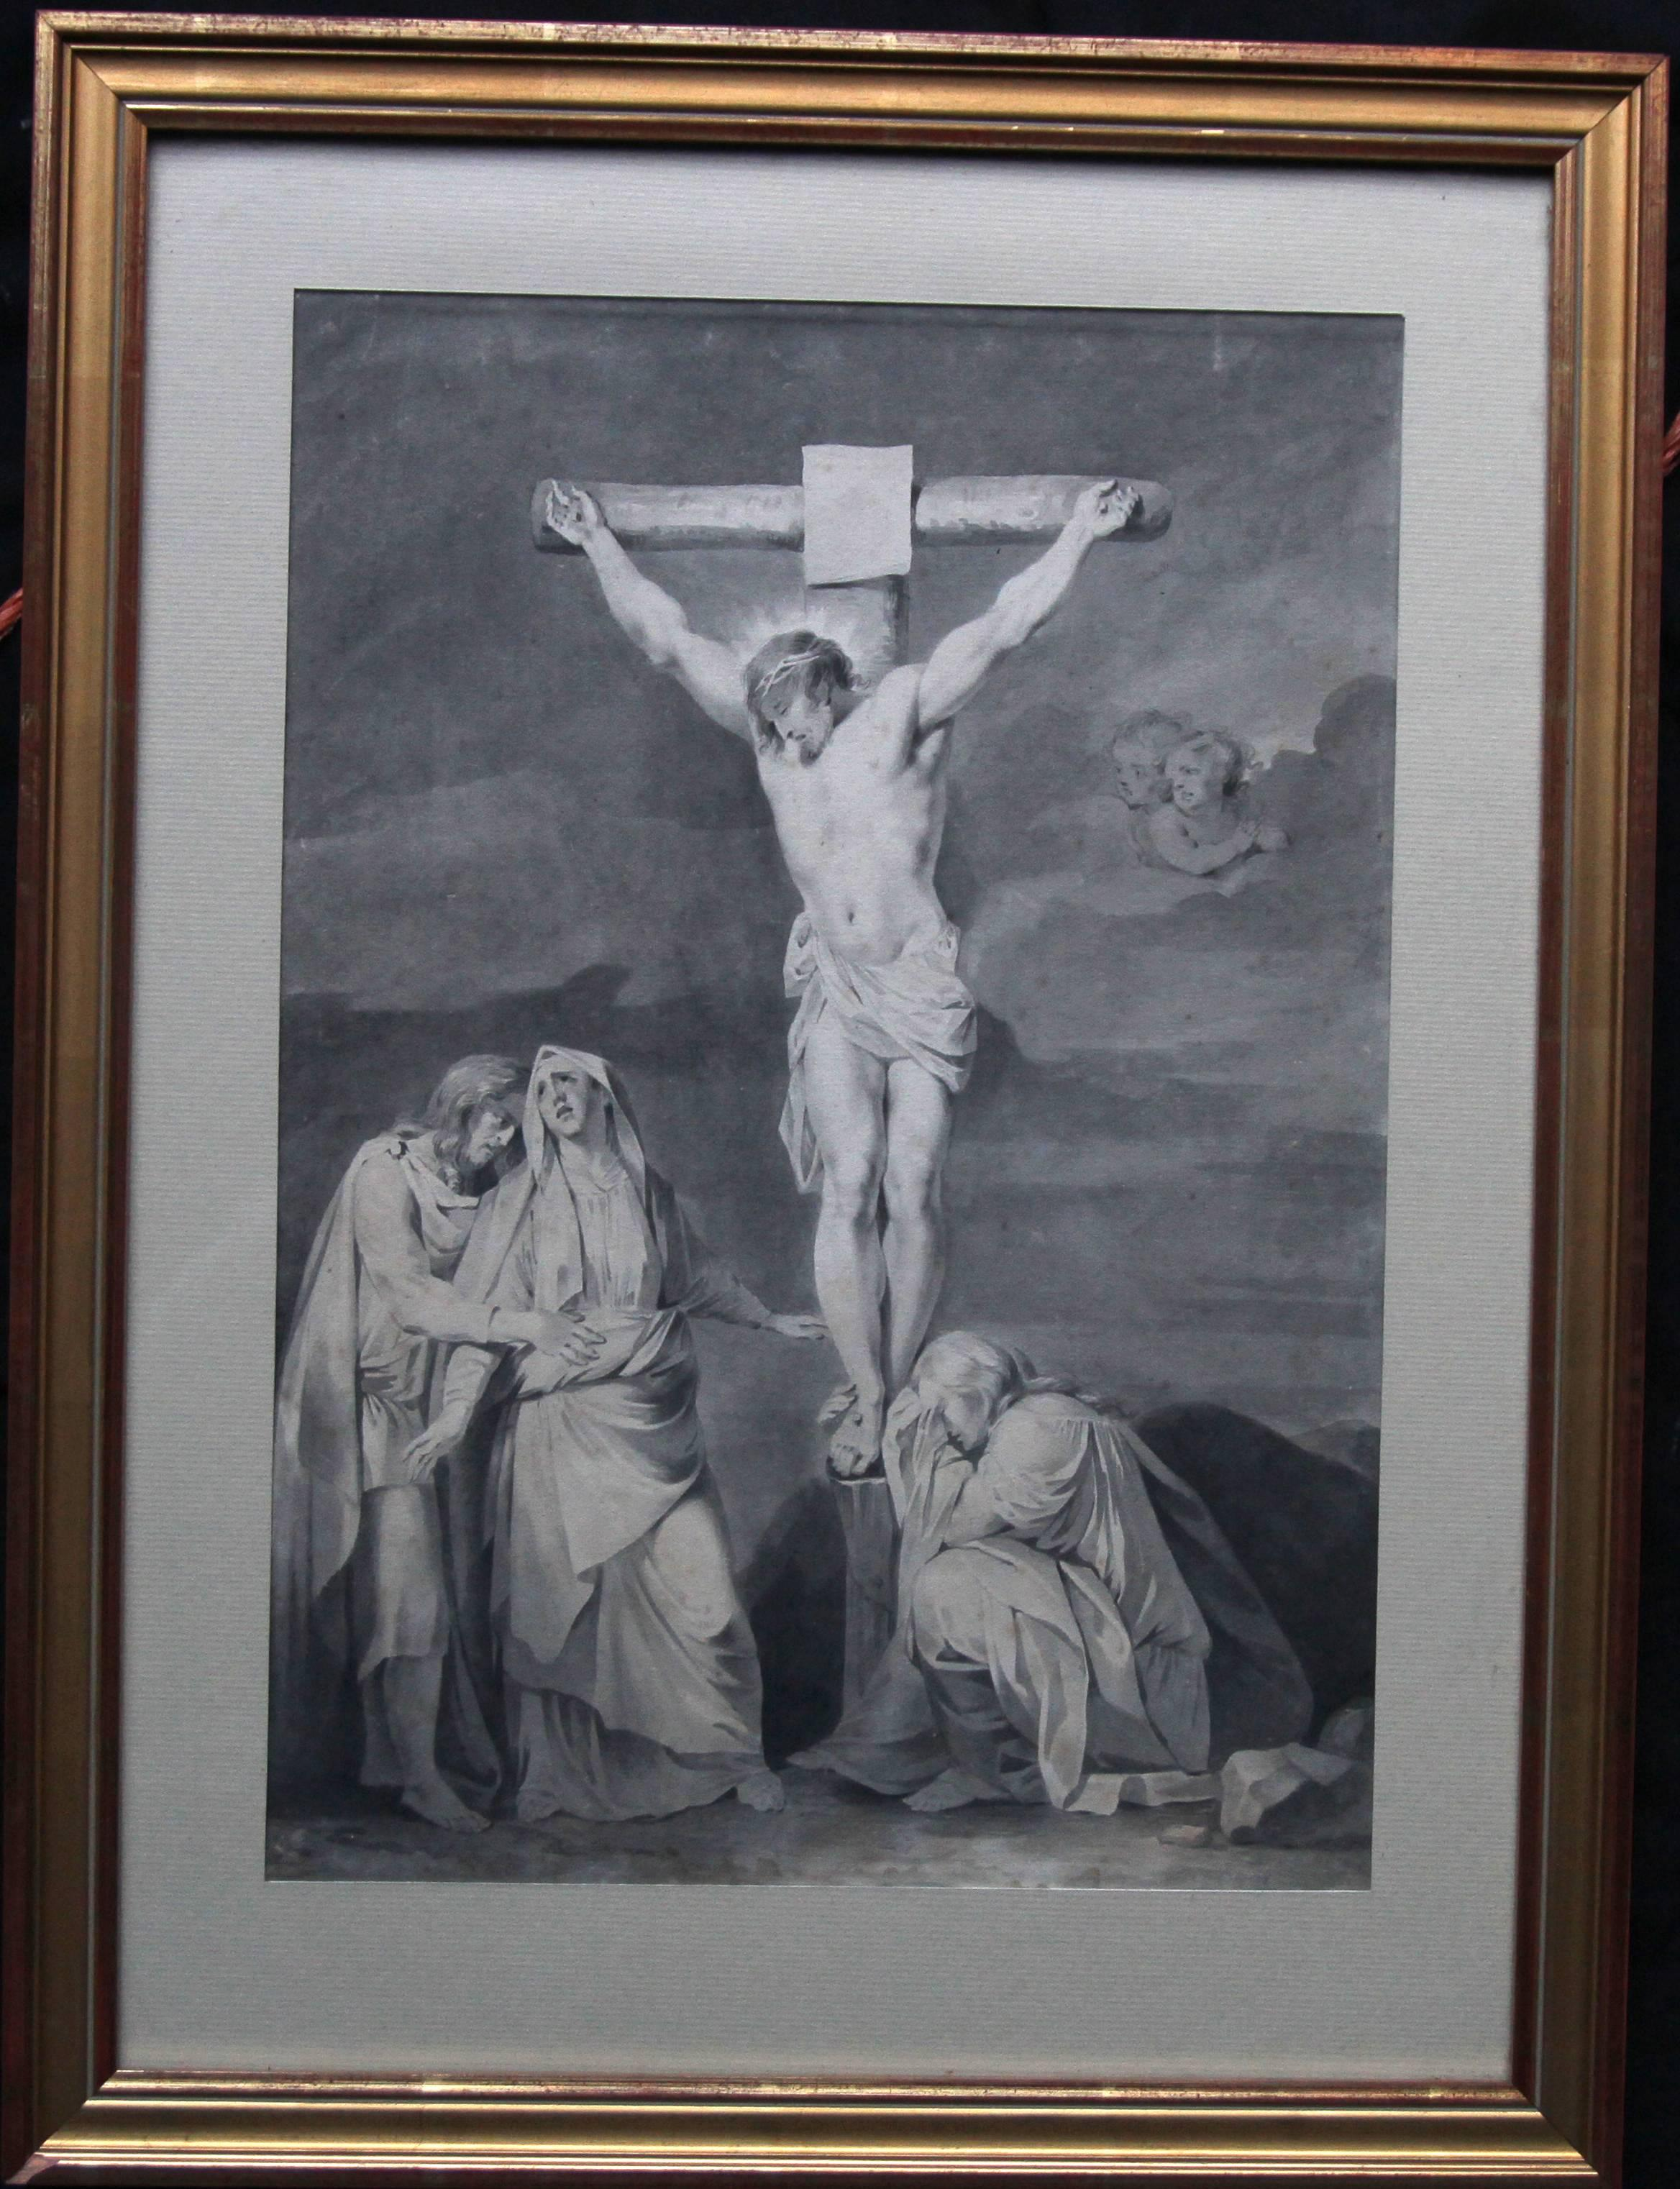 The Crucifixion of Jesus - Dutch Old Master art religious painting female artist